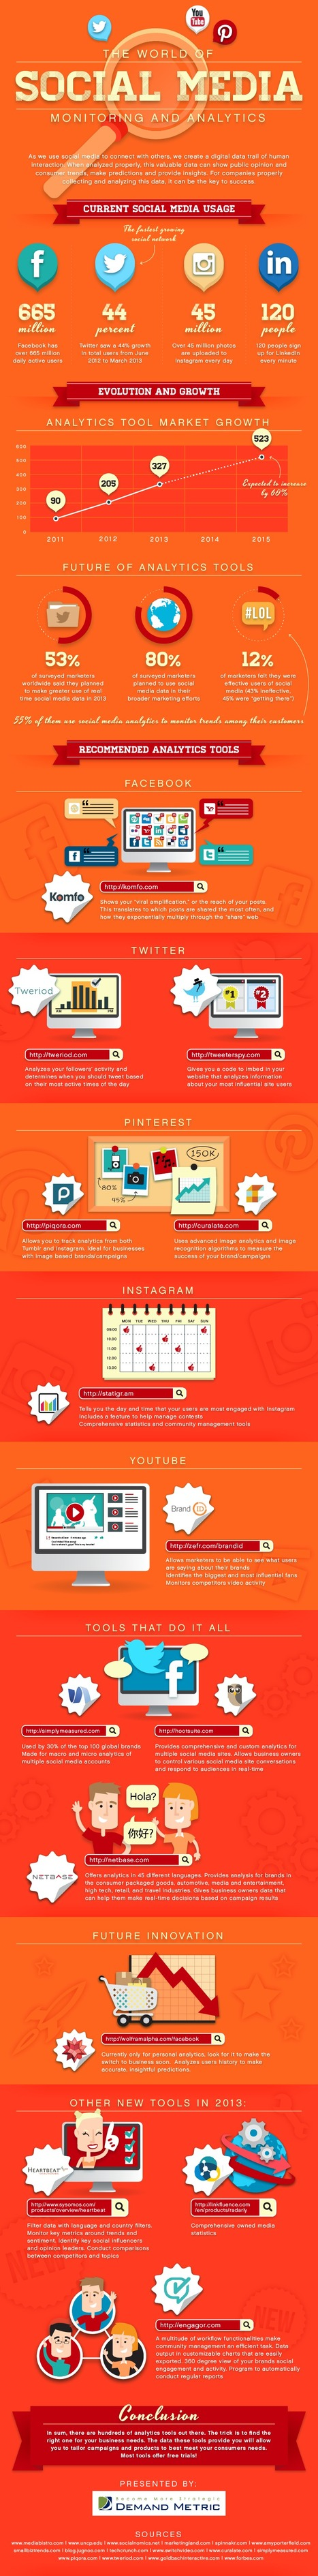 The World of Social Media Monitoring & Analytics  [infographic] | Digital, Social Media and Internet Marketing | Scoop.it